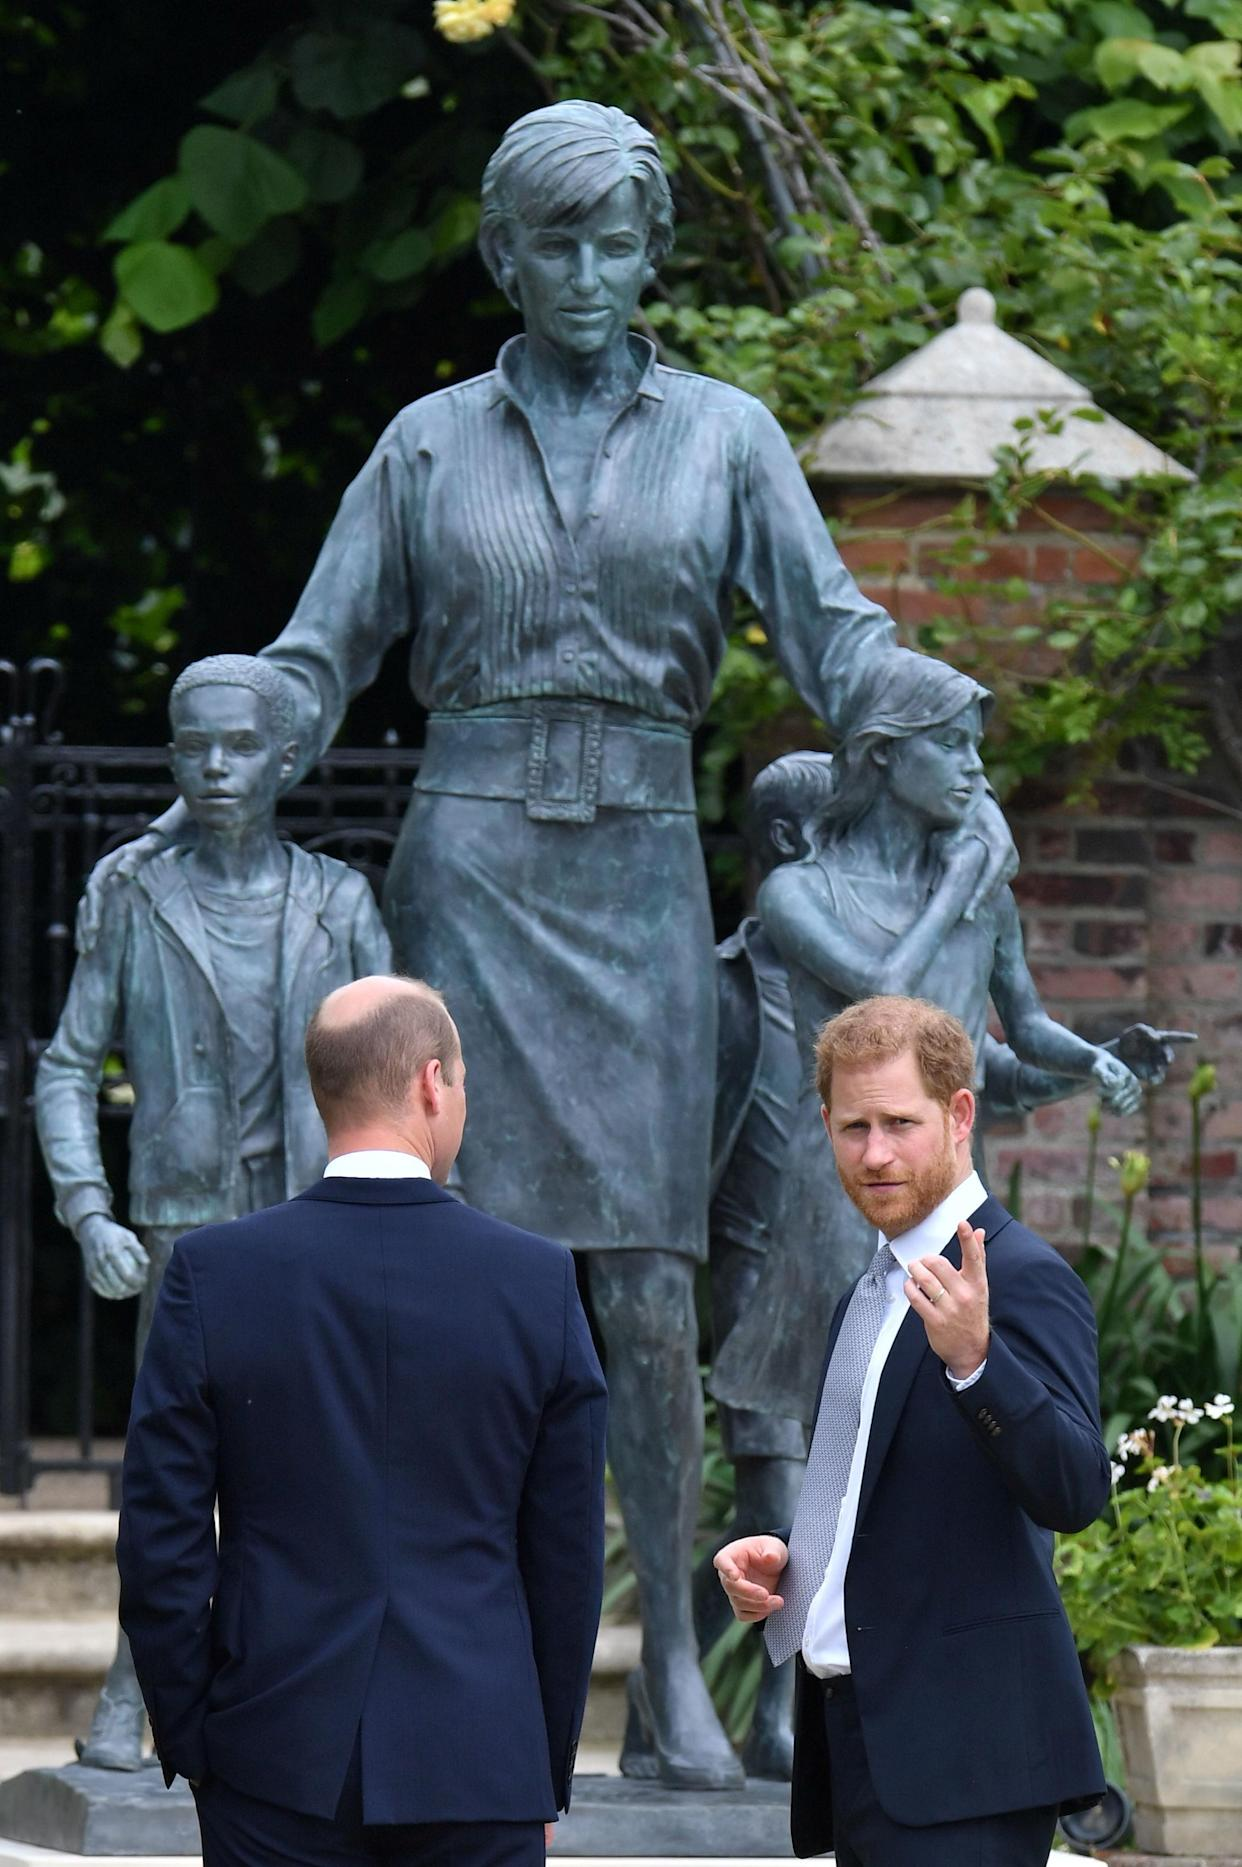 The statue depicts the late princess, who would have turned 60 on July 1. (Photo: Dominic Lipinski/Pool via REUTERS)